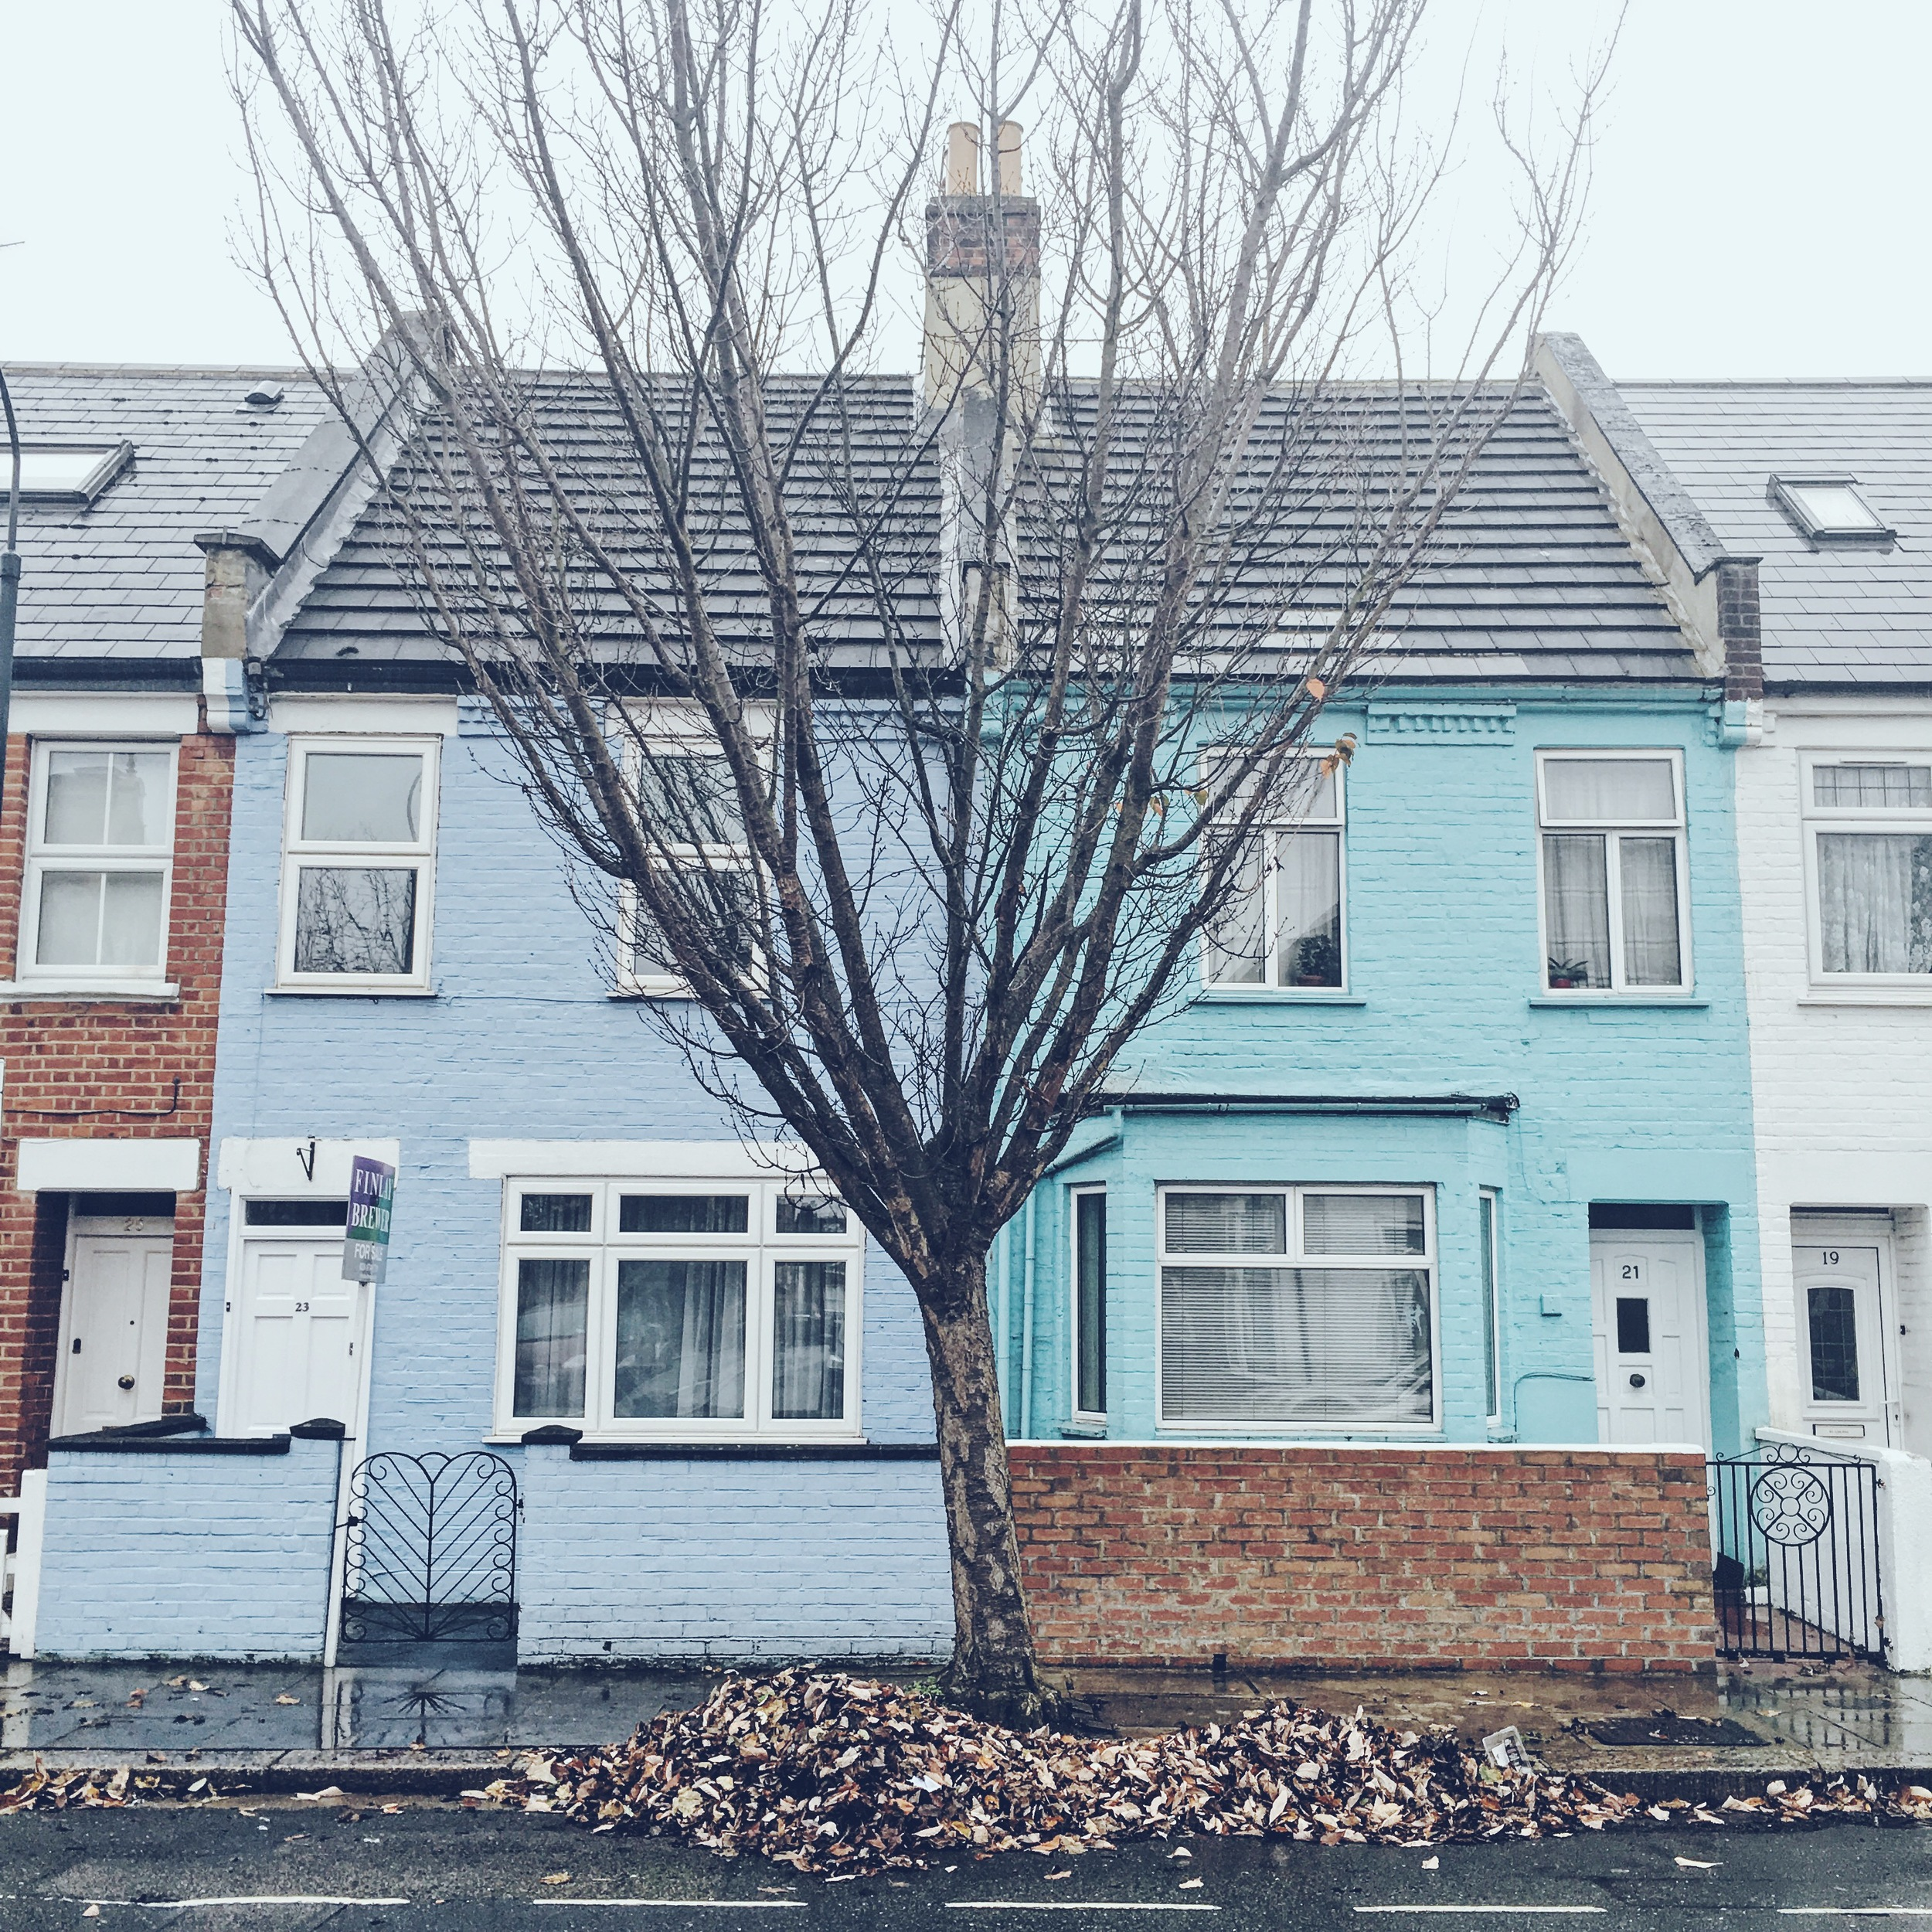 Their street was the cutest. Loved the pastel houses. Definitely brightened up the dreary weather.